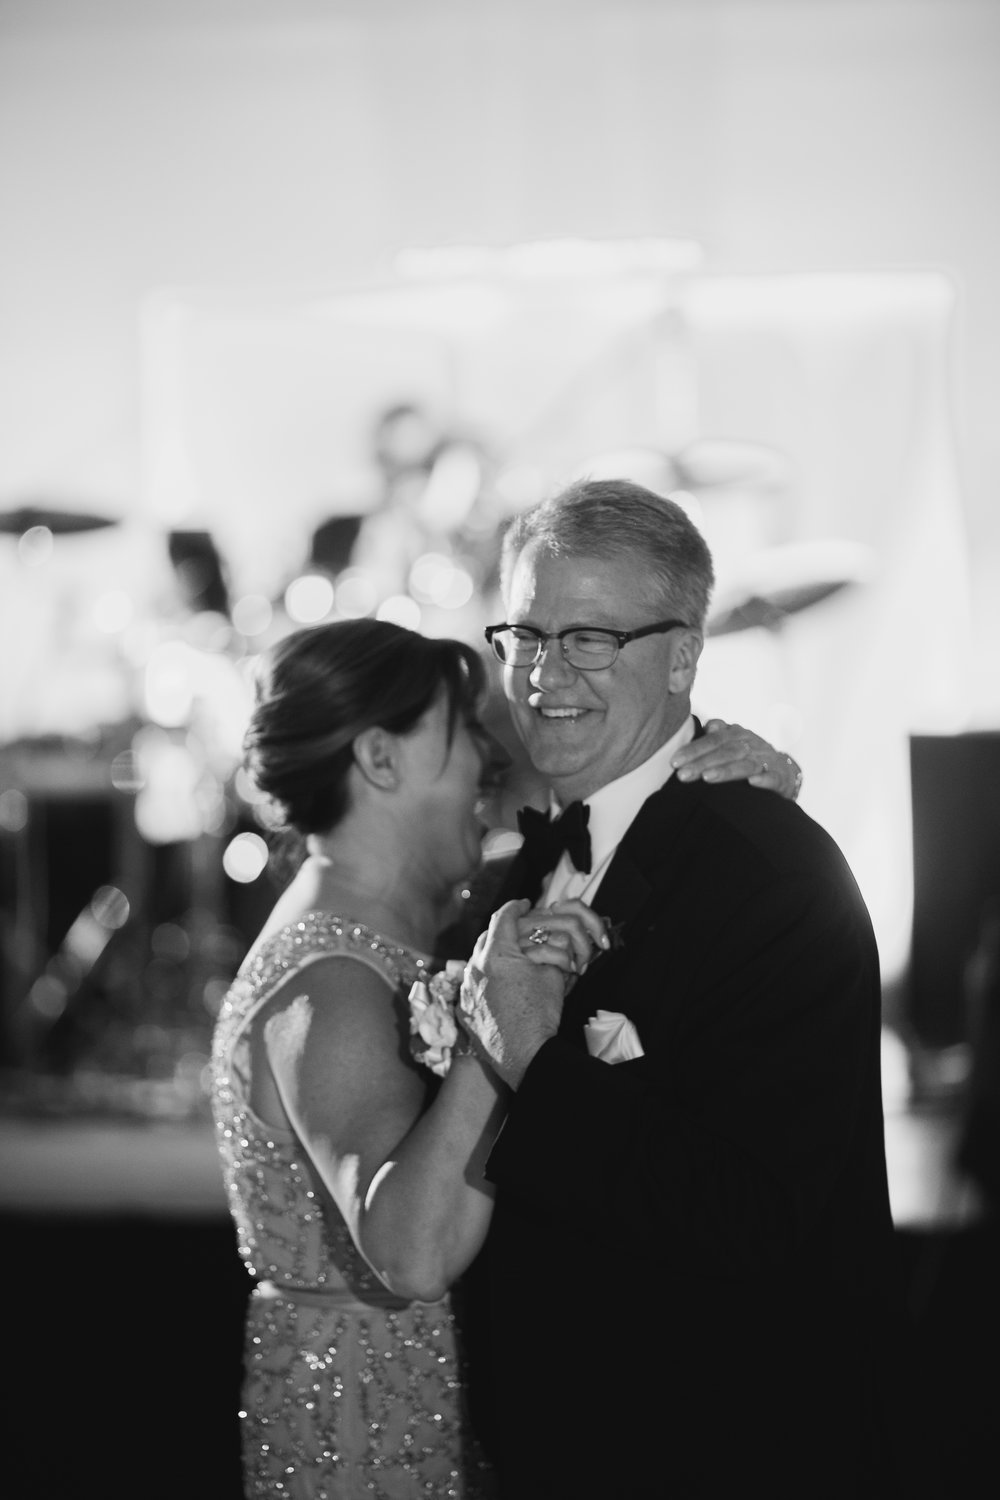 Wisconsin_Wedding_acowsay_Uttke_Photography_Parents.jpg